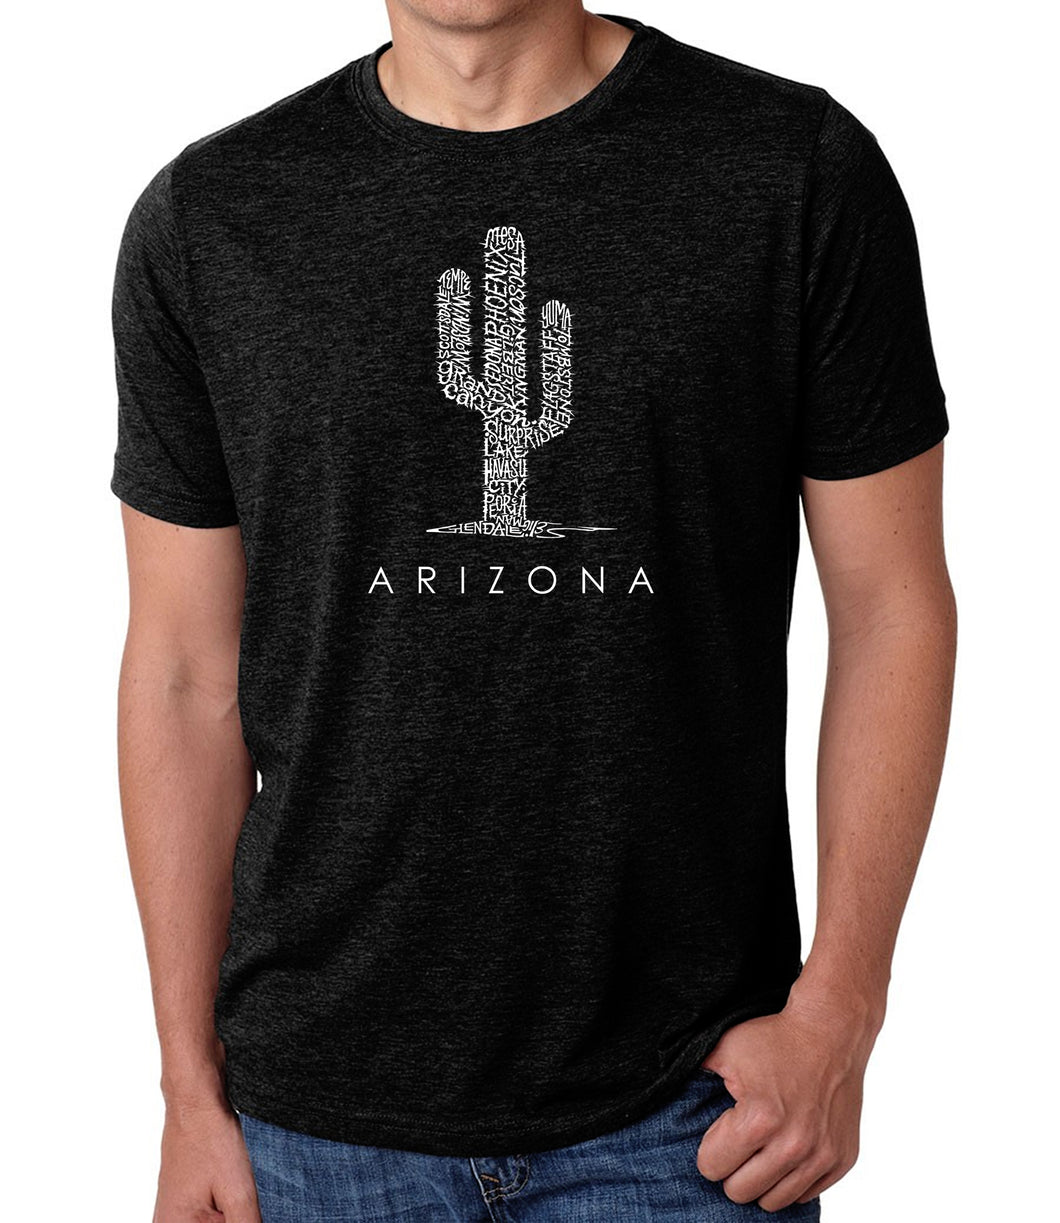 LA Pop Art Men's Premium Blend Word Art T-shirt - Arizona Cities